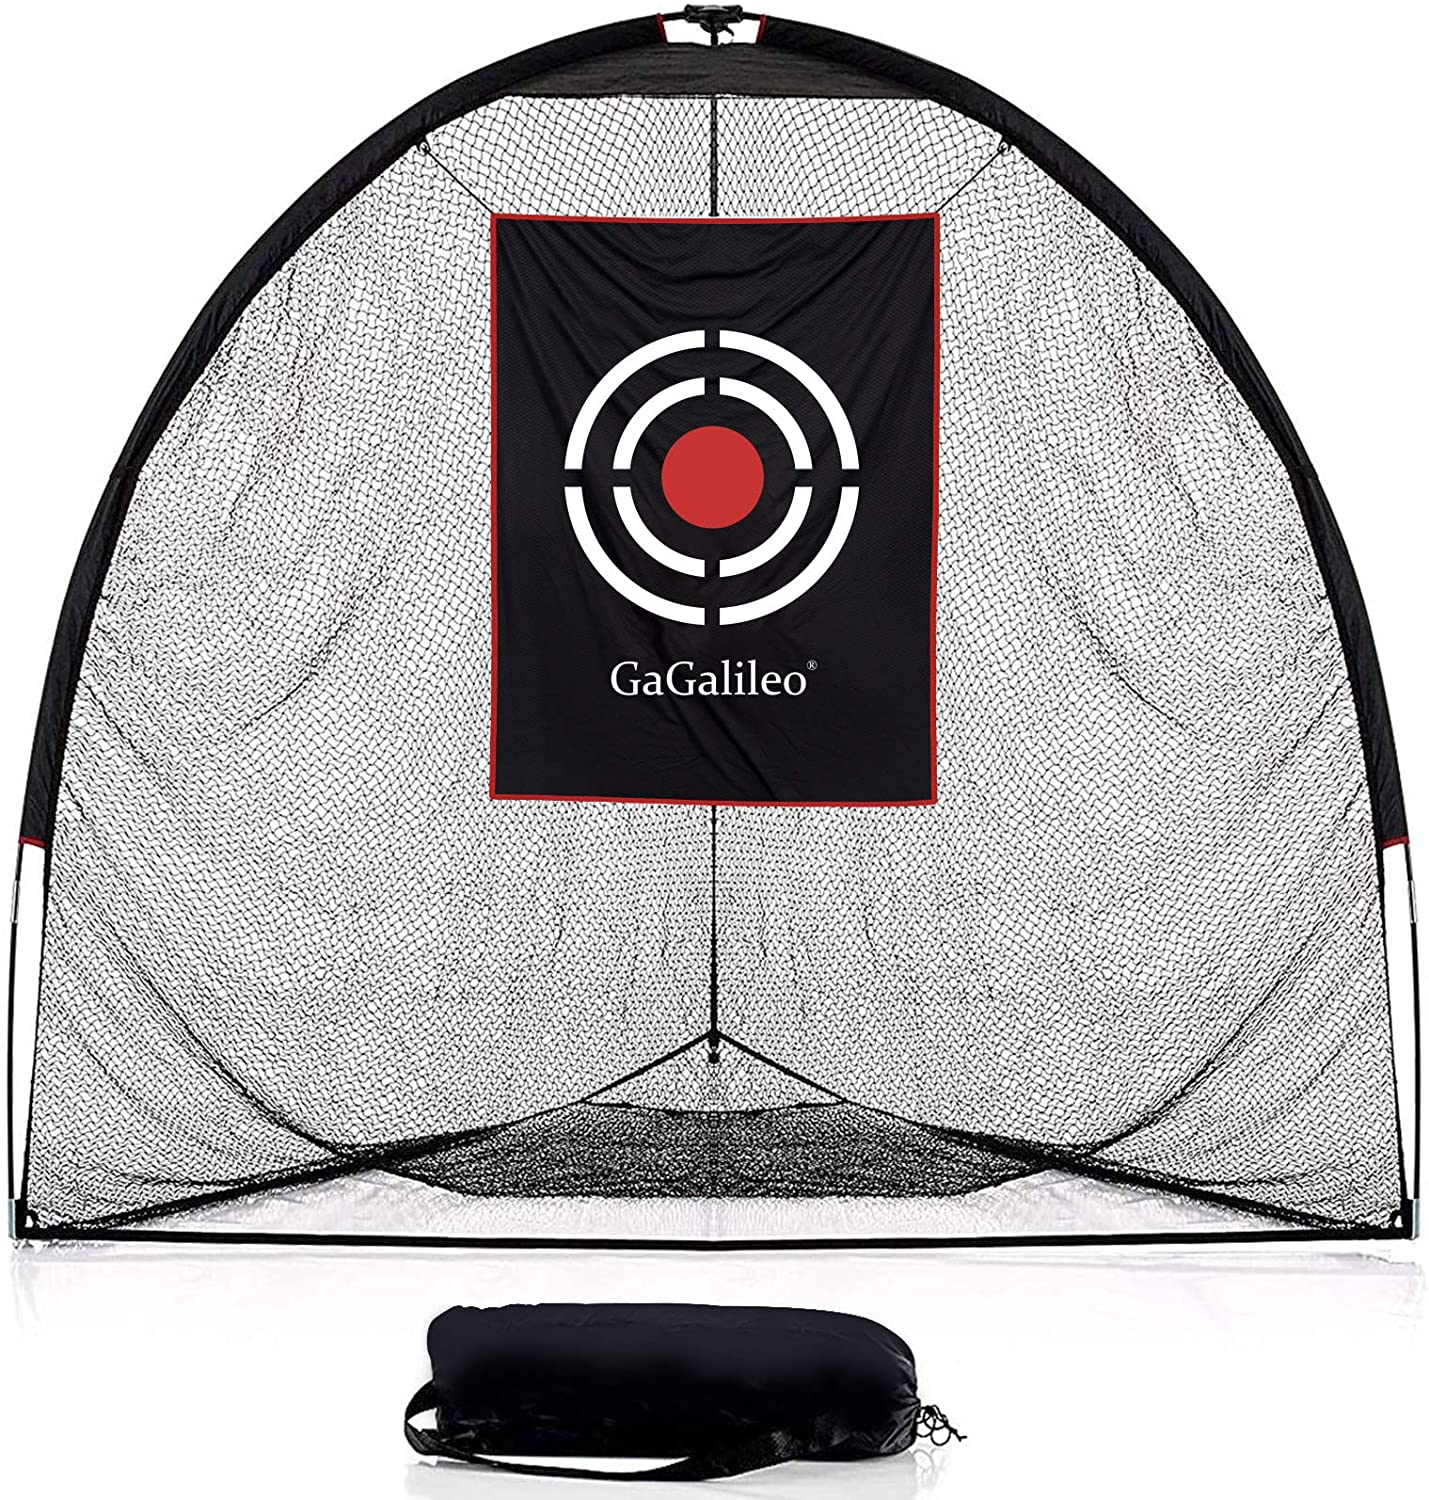 Galileo Golf Practice Hitting Nets Driving Range Training Aids with Carry Bag and Target|8'(L)X7'(H)X7'(D)